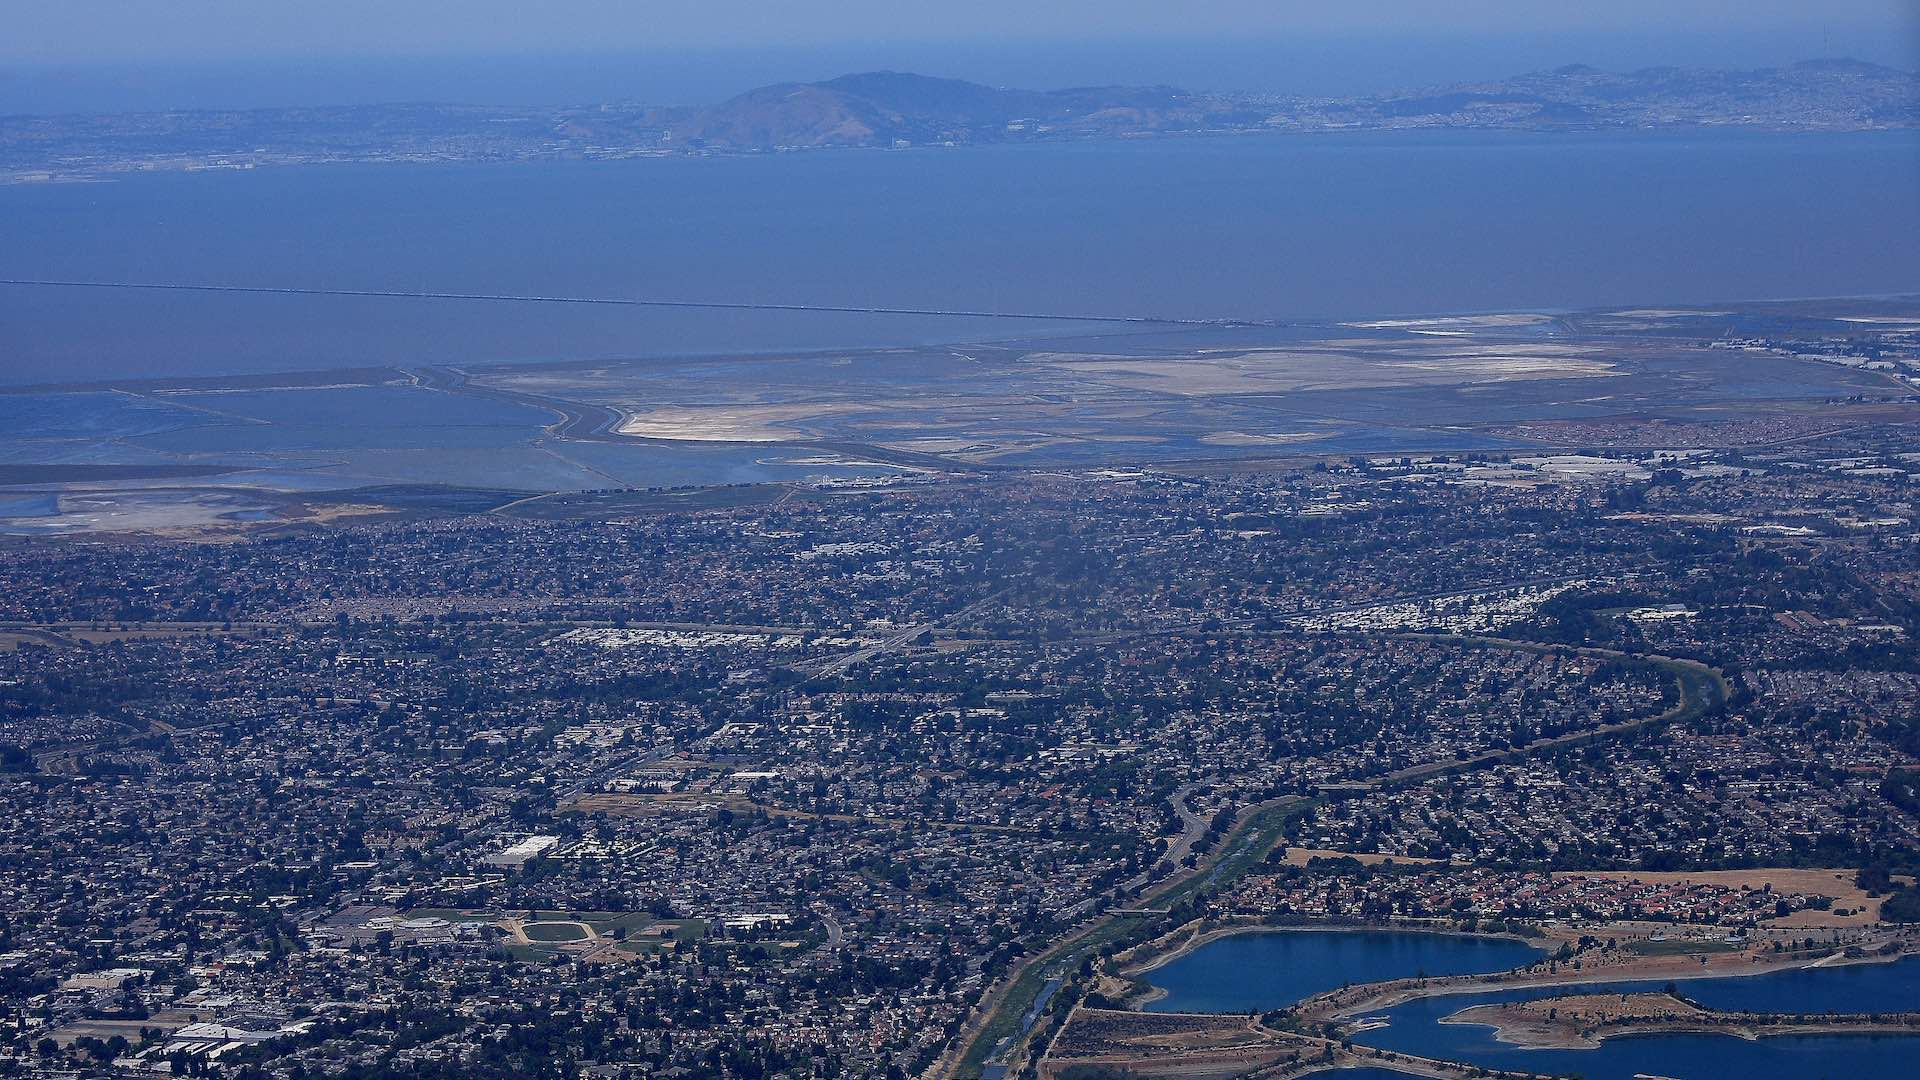 Aerial view of Palo Alto and the Dumbarton Bridge